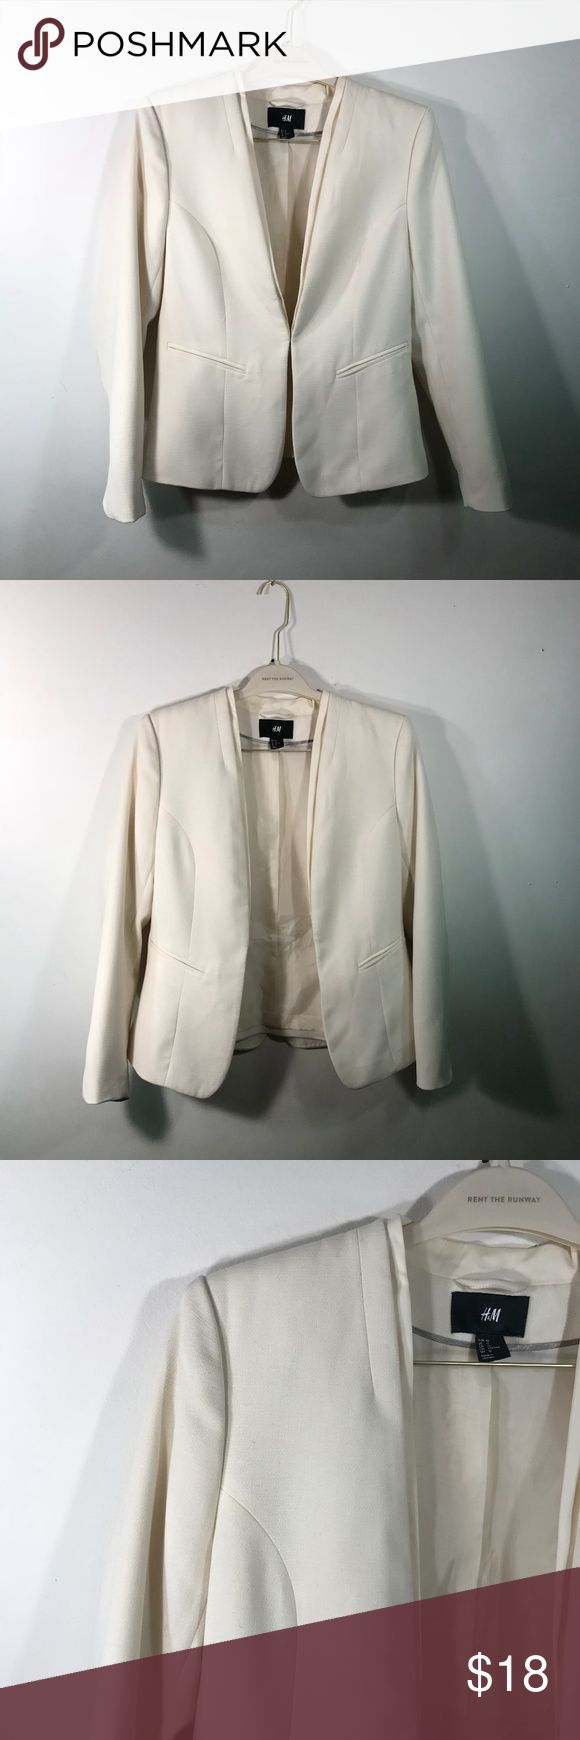 H&M White Egg Shell Fitted Work Academy Blazer Perfect blazer for work  Pairs well with skirt or dress pants - especially dark colored Great for spring and summer  Good condition  White color with tailored fit and blazer design on back  Chest: 17 Sleeve: 24 Length: 23 H&M Jackets & Coats Blazers